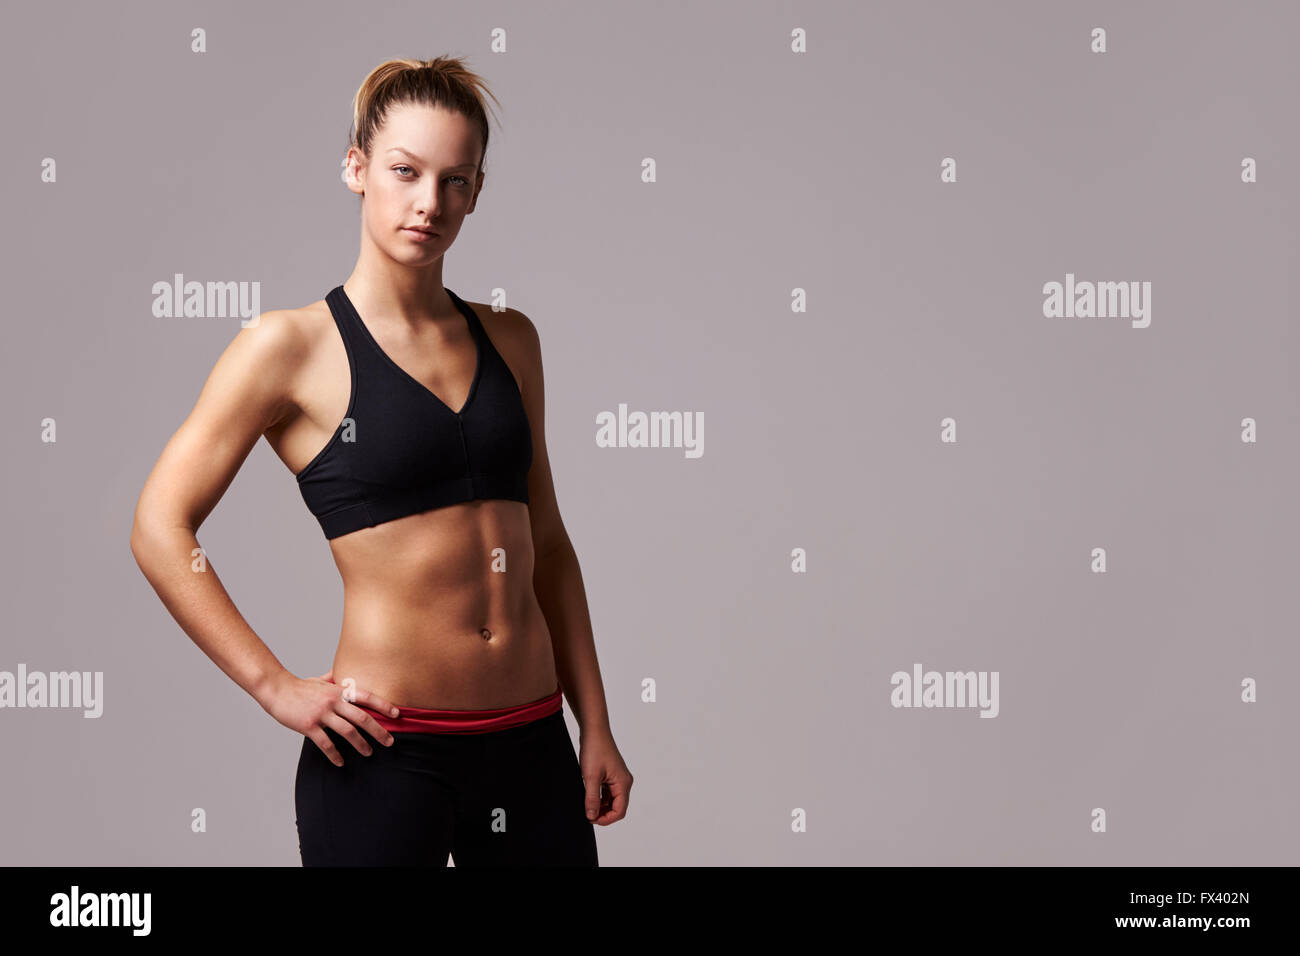 Portrait of athletic woman, hand on hip looking to camera - Stock Image